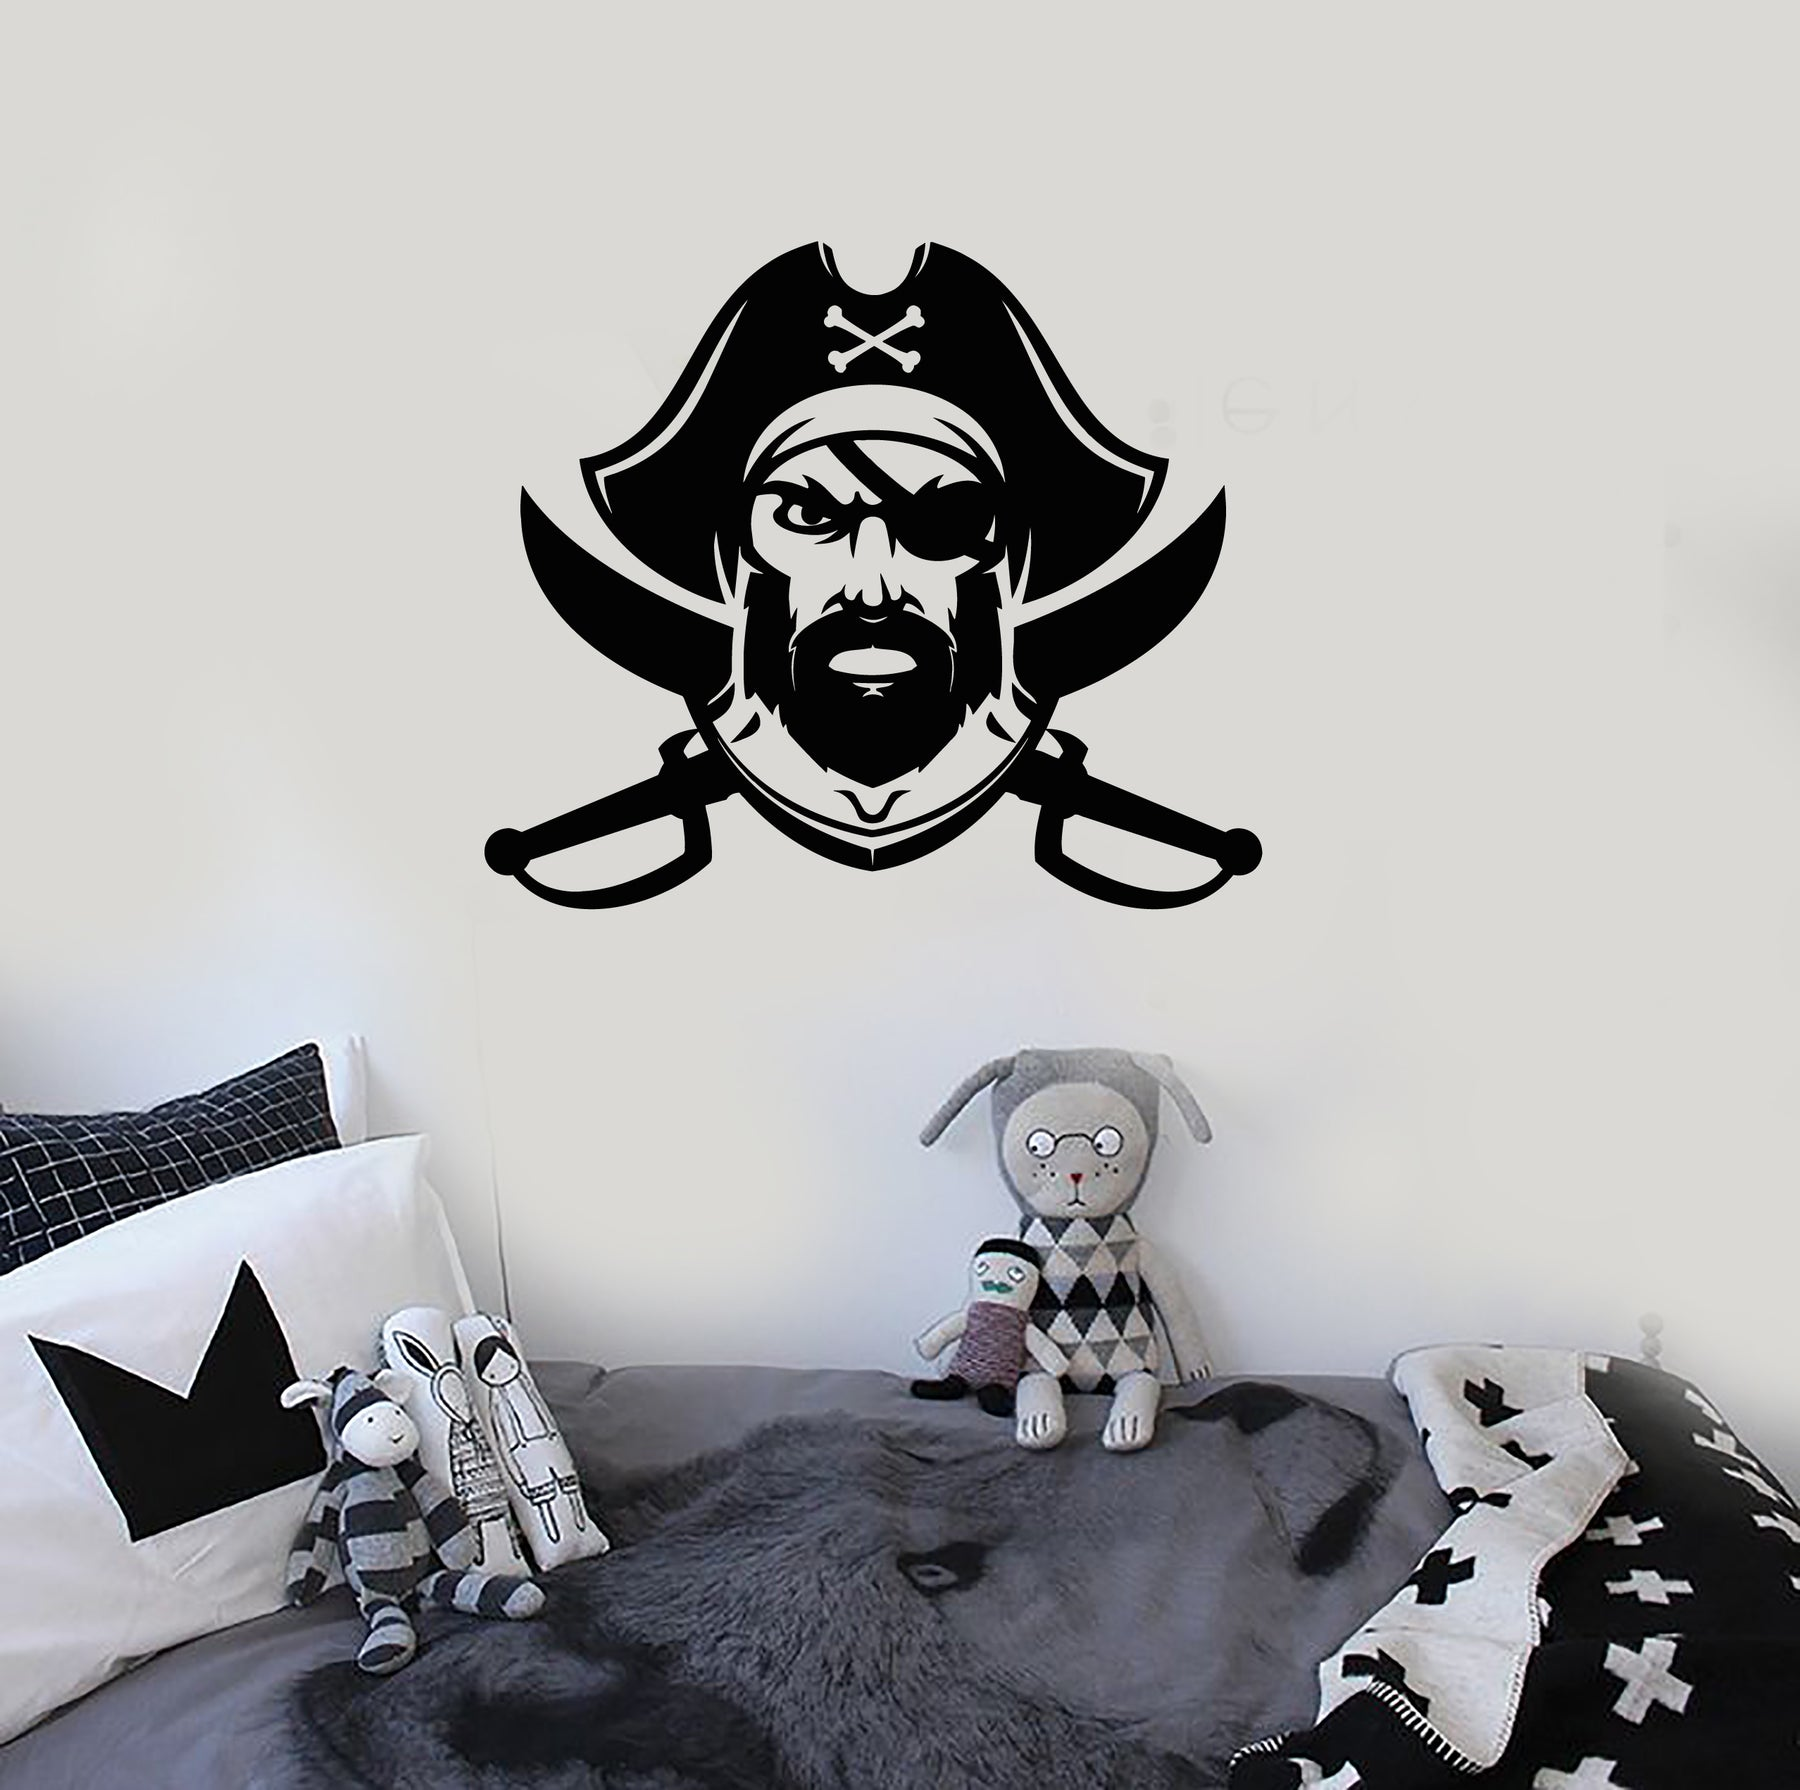 Vinyl Wall Decal Captain Sea Pirate Ship Nautical Style Stickers (3935ig)